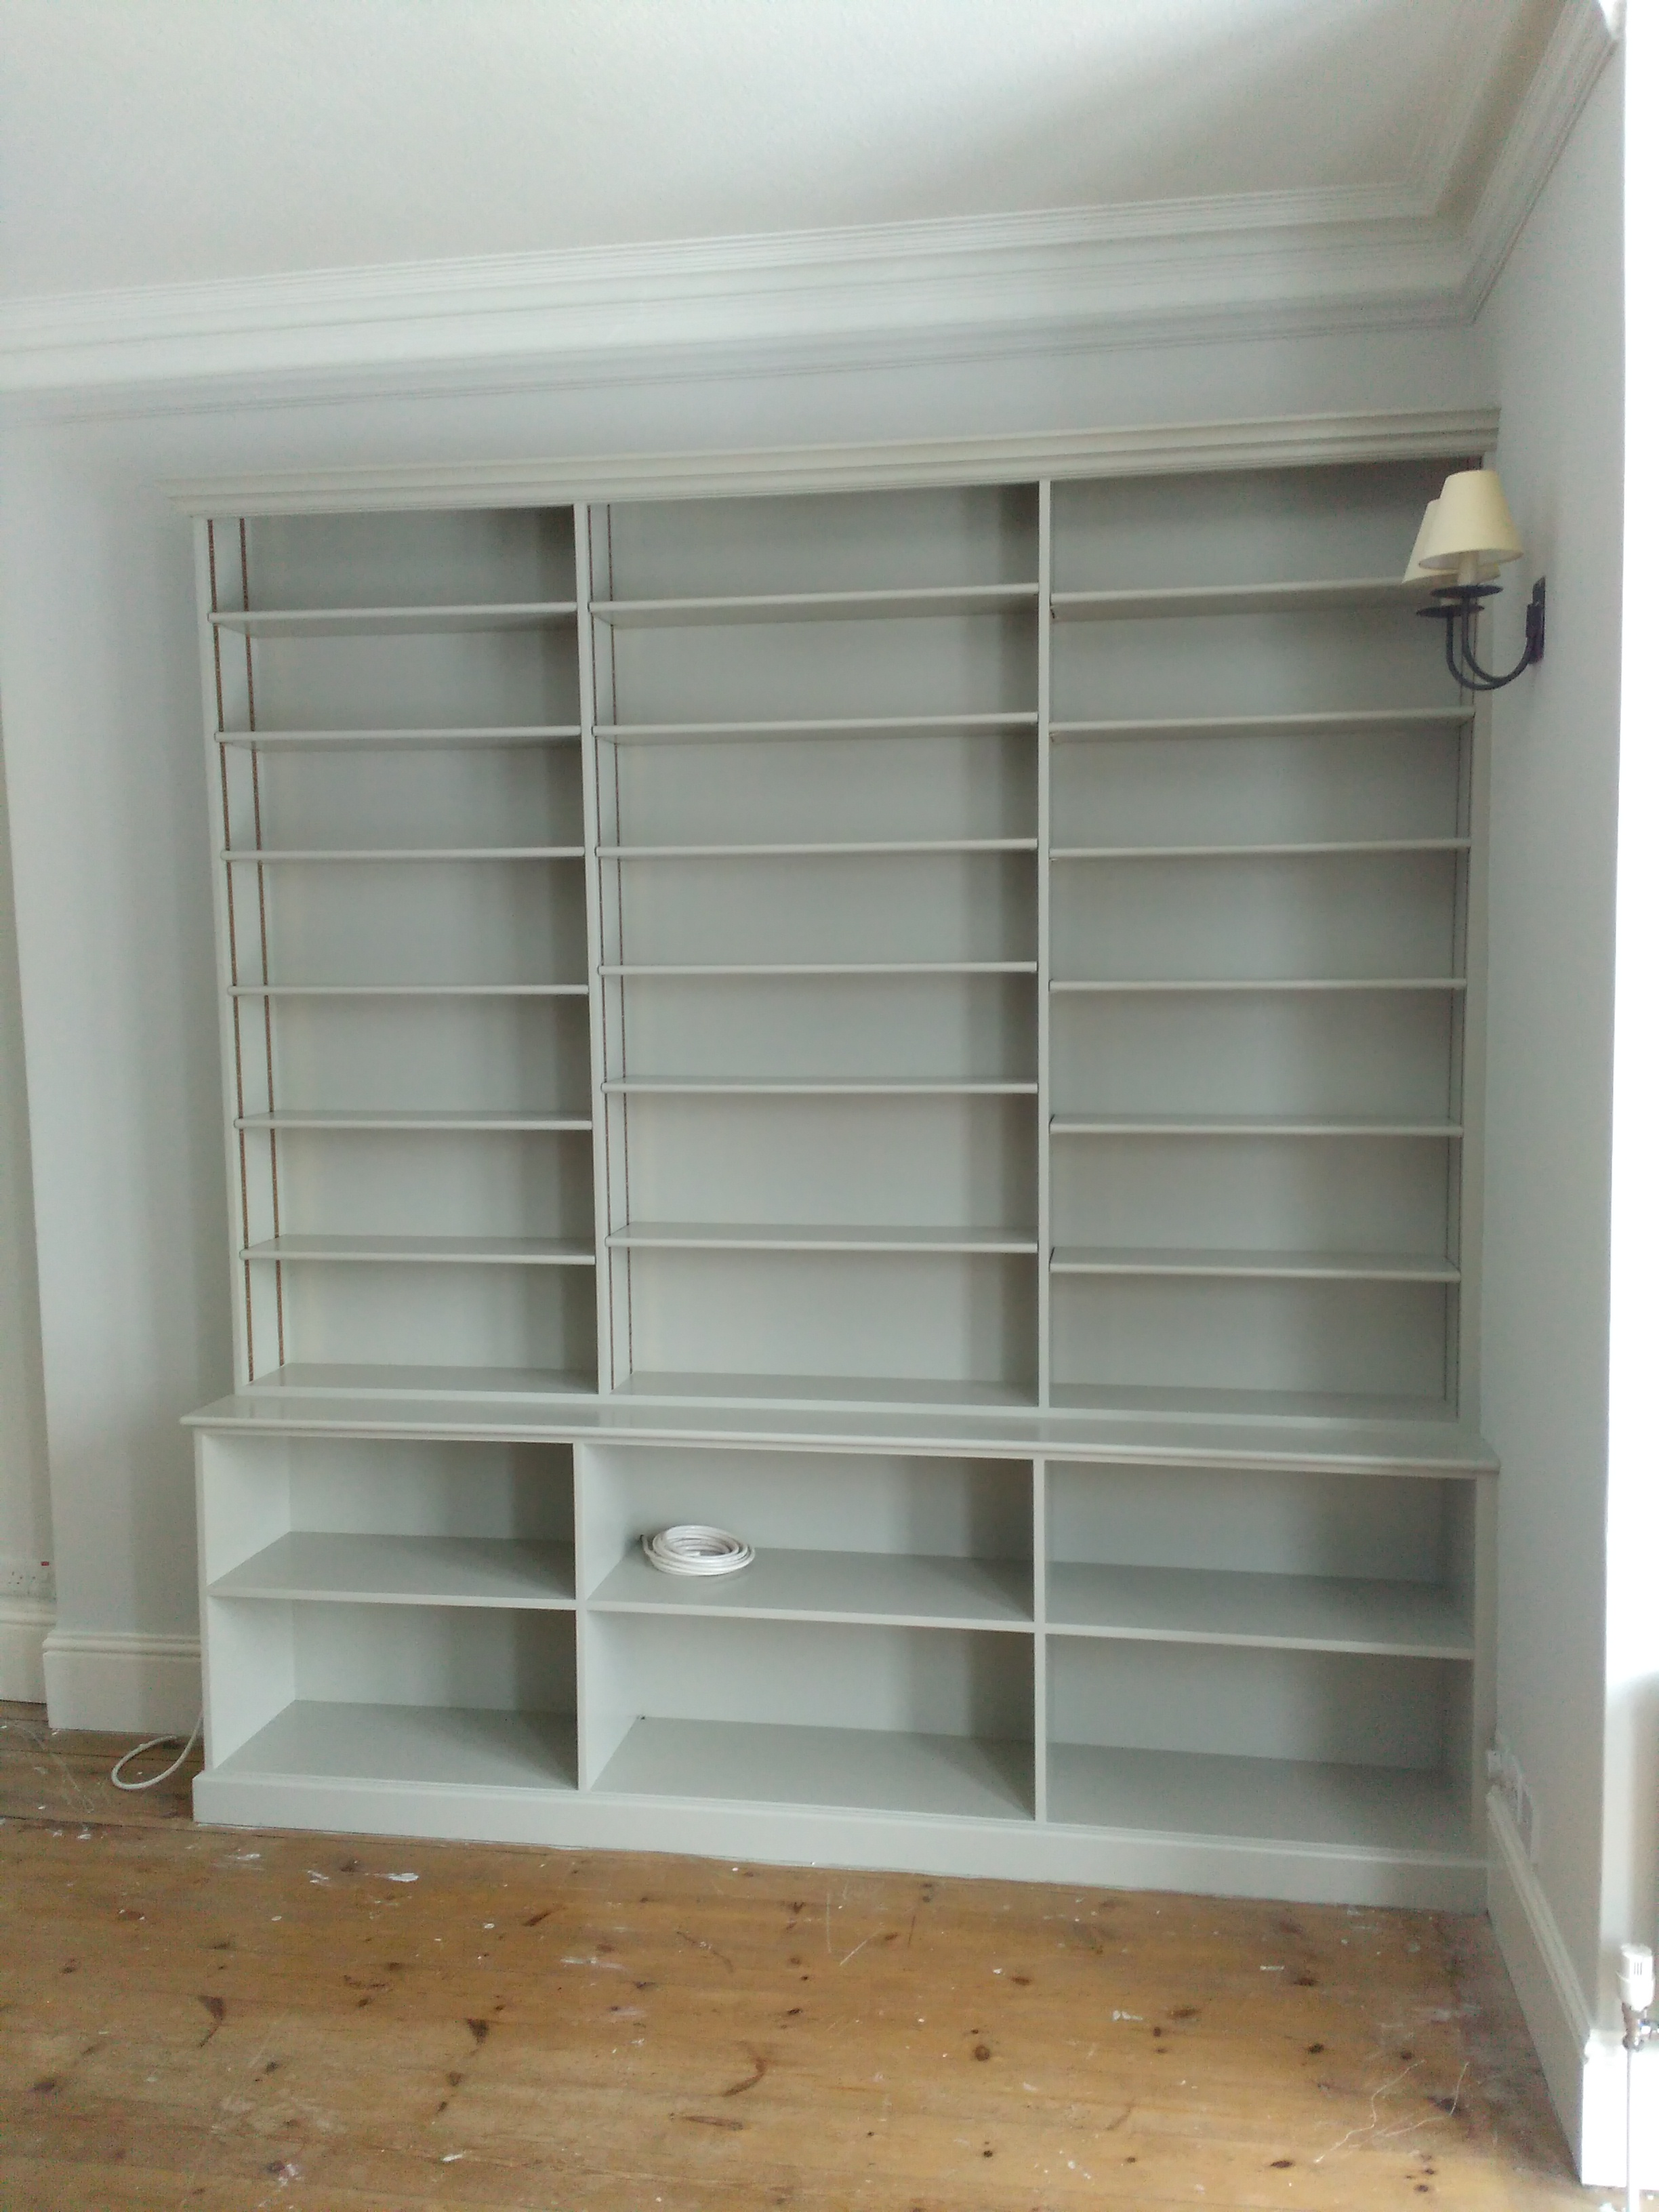 cabinets-by-shrewsbury-joiners